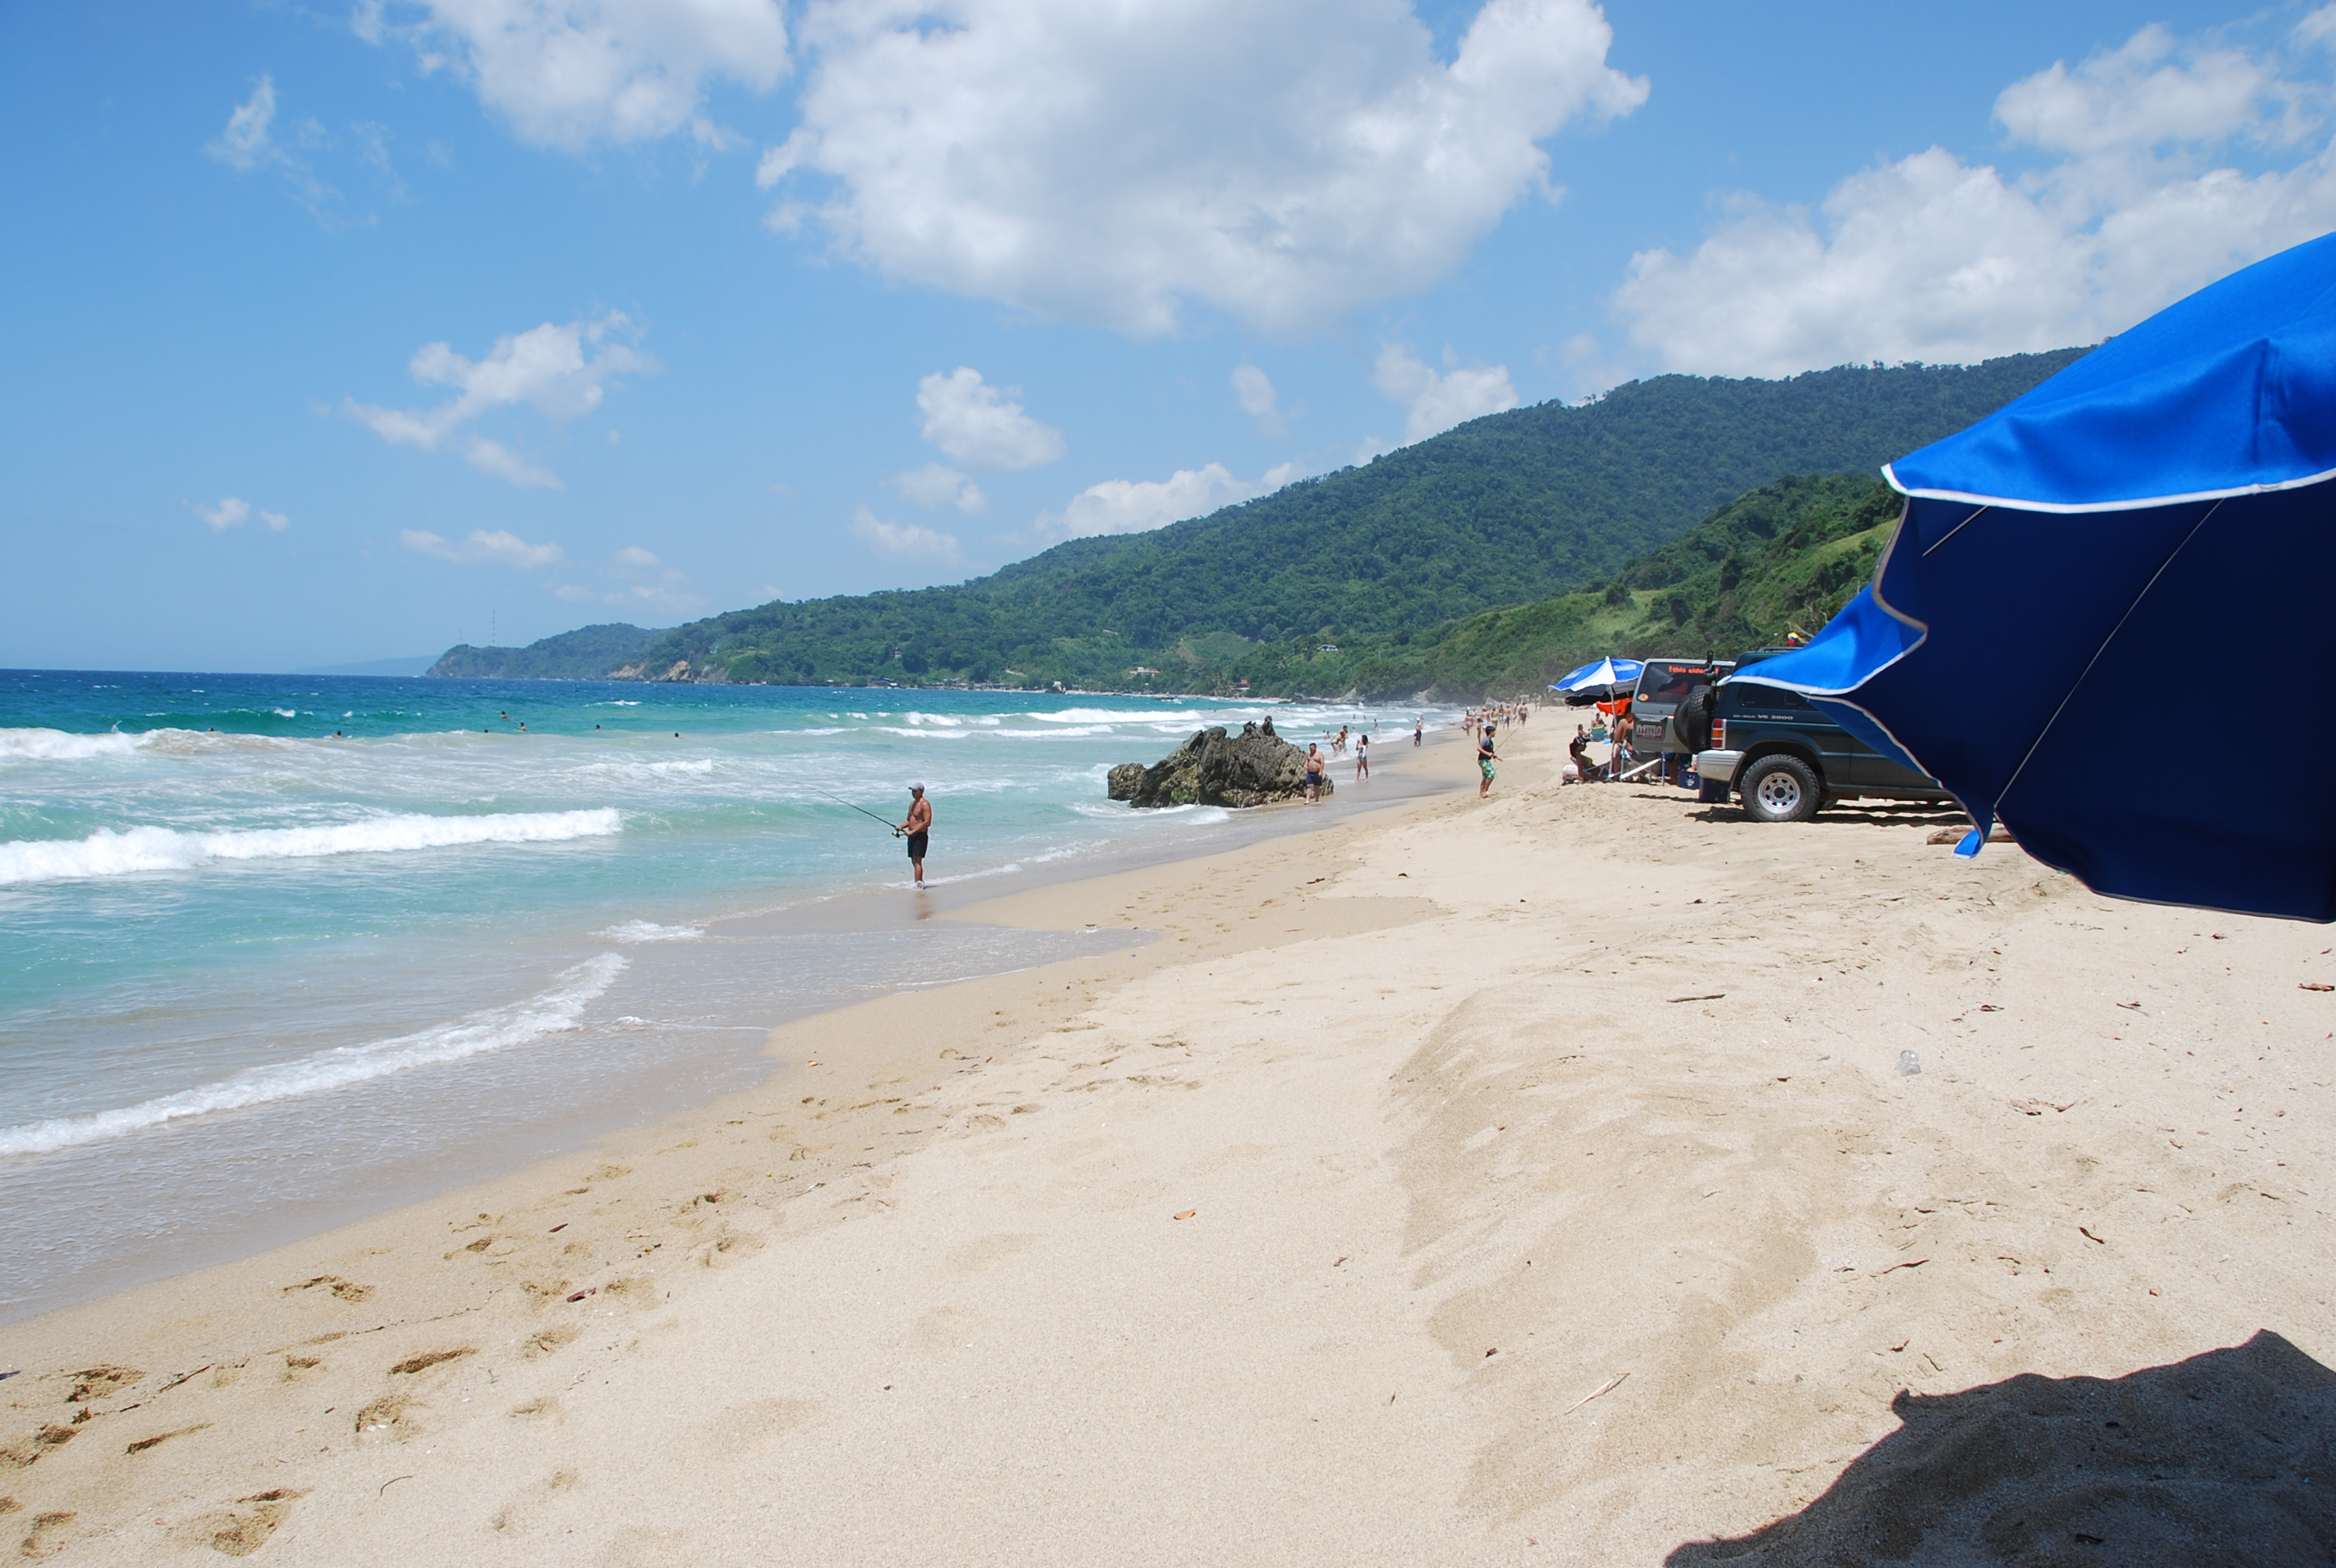 Chair on beach images buy chair on beach - Taxitocaracas S All Day Tours Up To 8 Hours